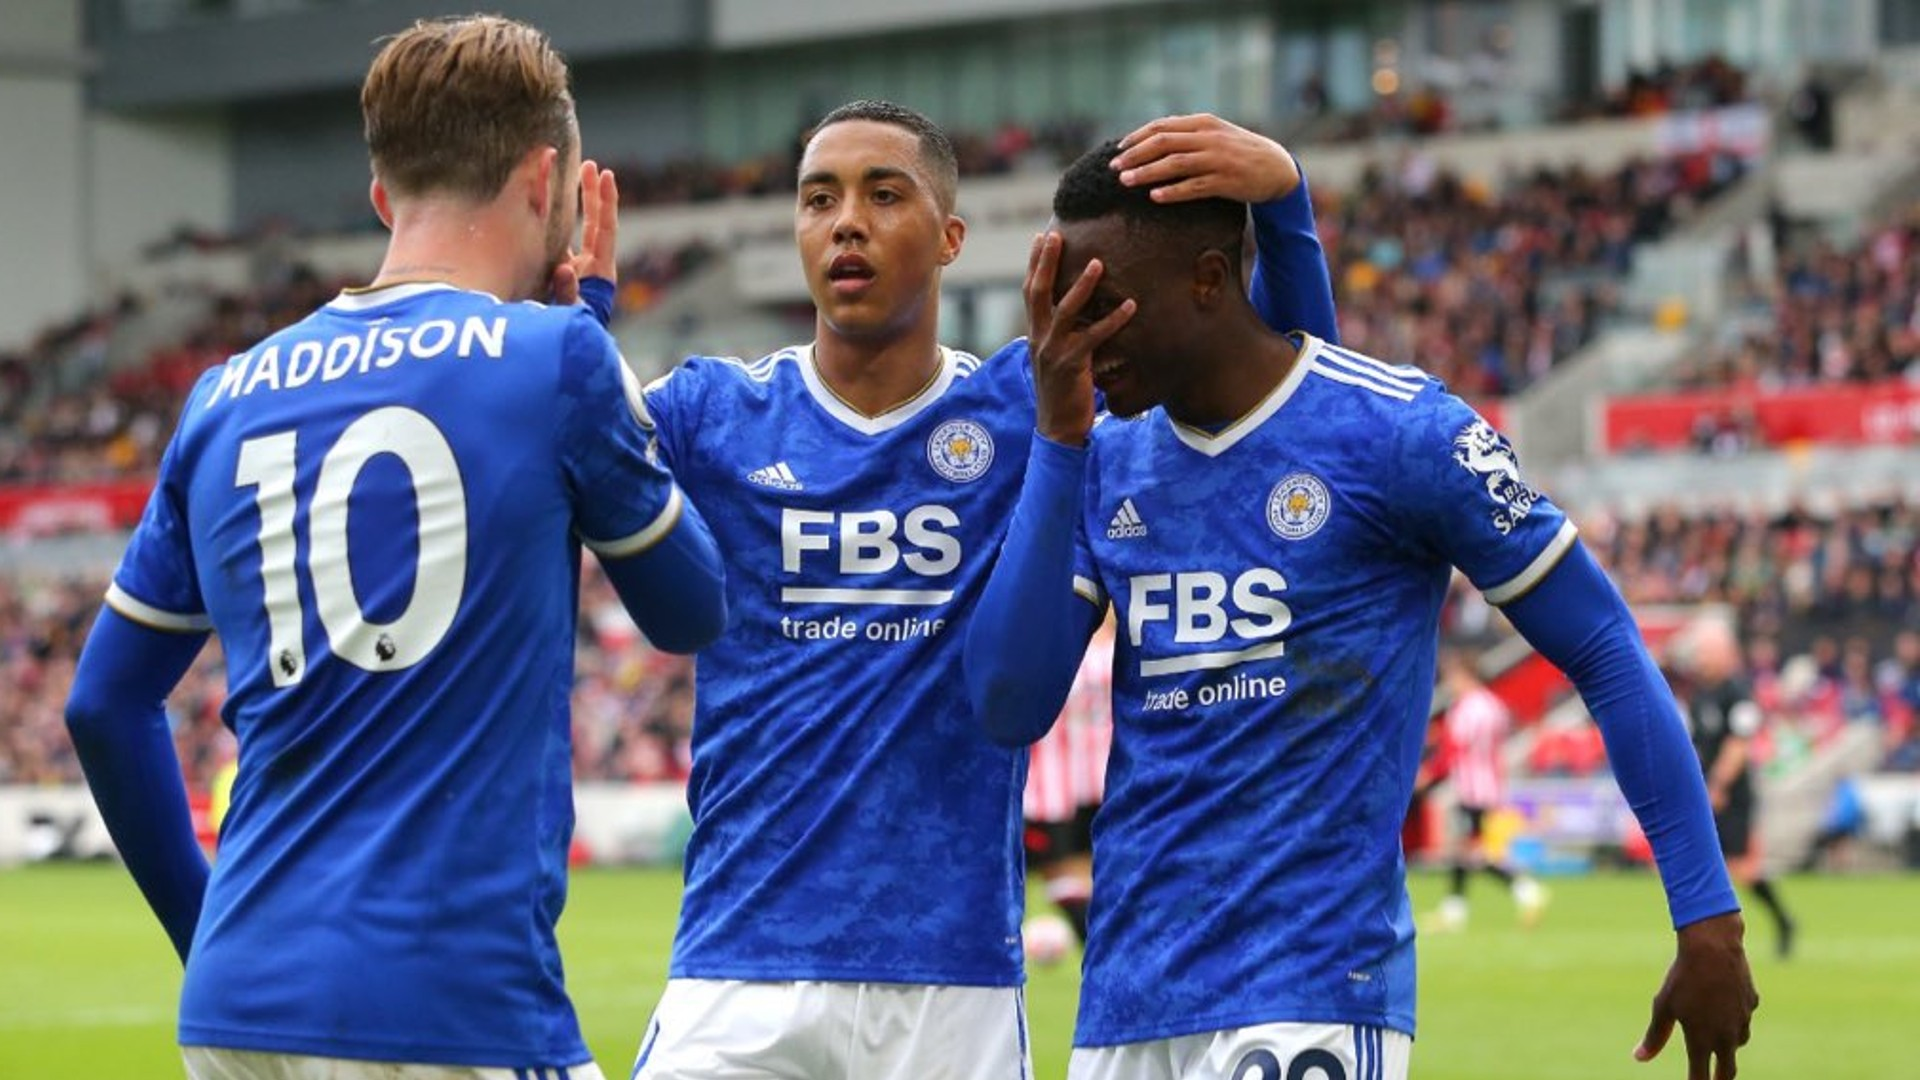 'Daka is not greedy and I knew he will pass to me' – Leciester City's Maddison on Brentford goal